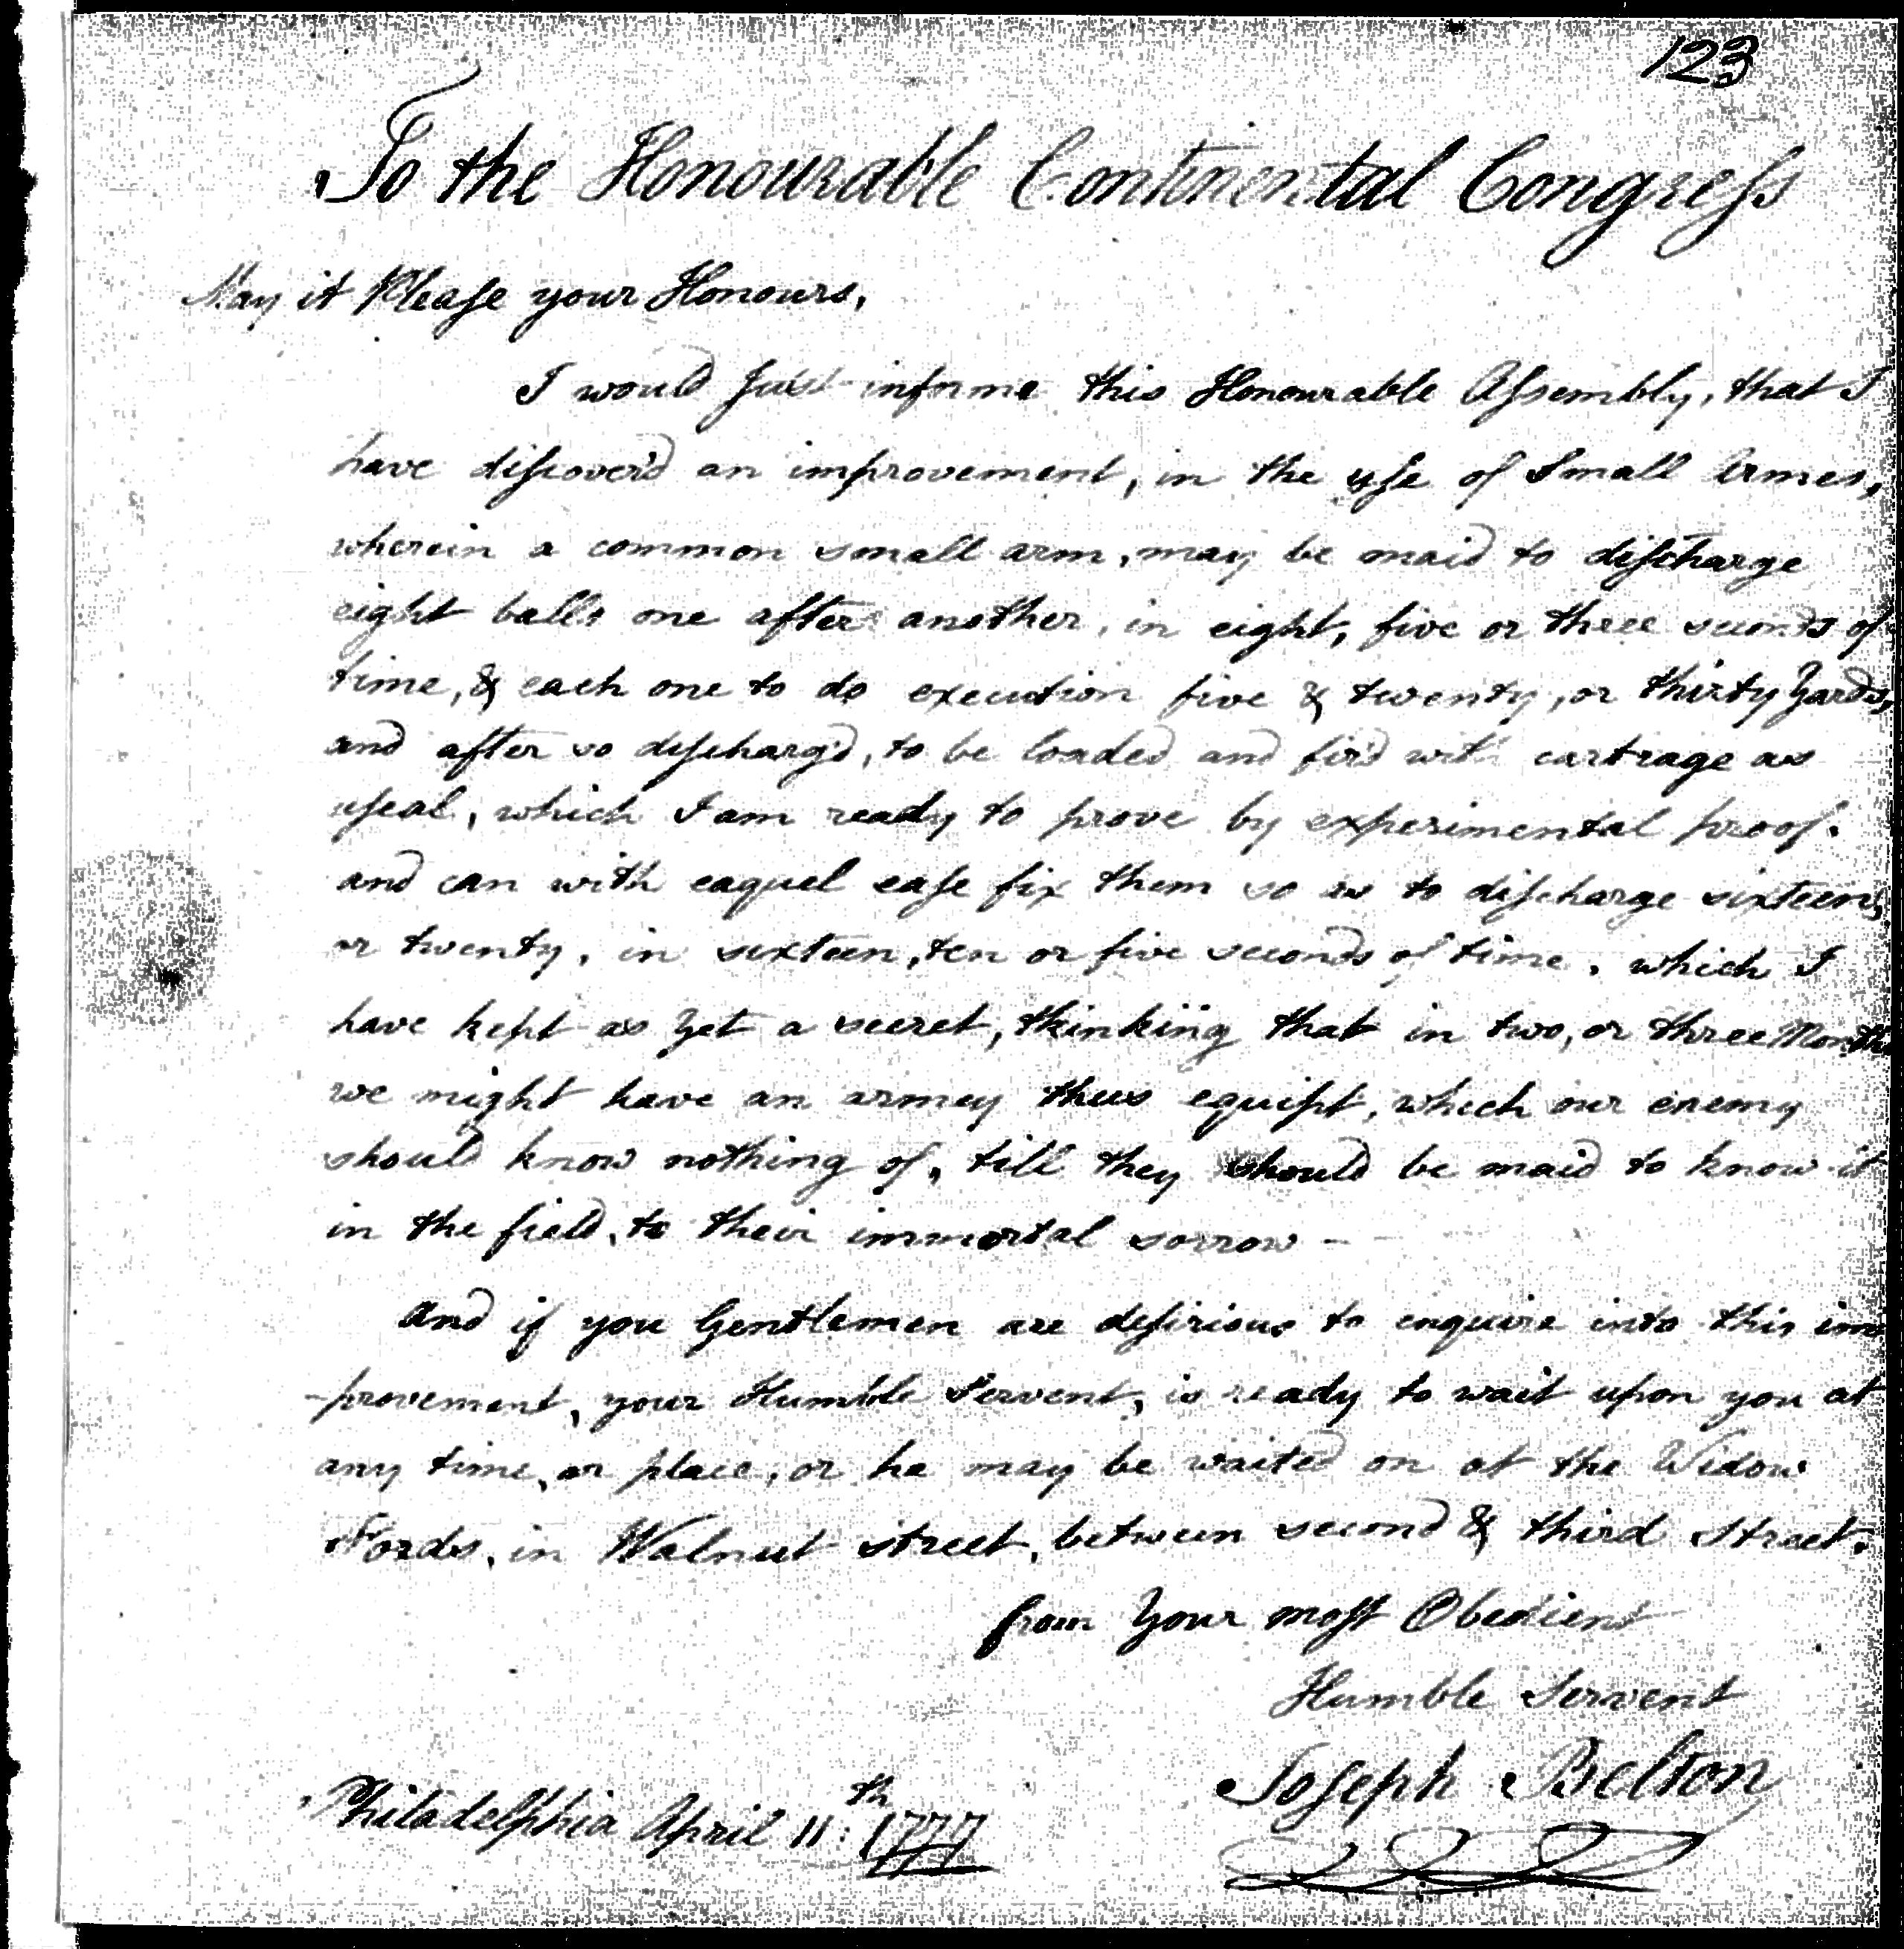 Letter to the Continental Congress from Joseph Belton